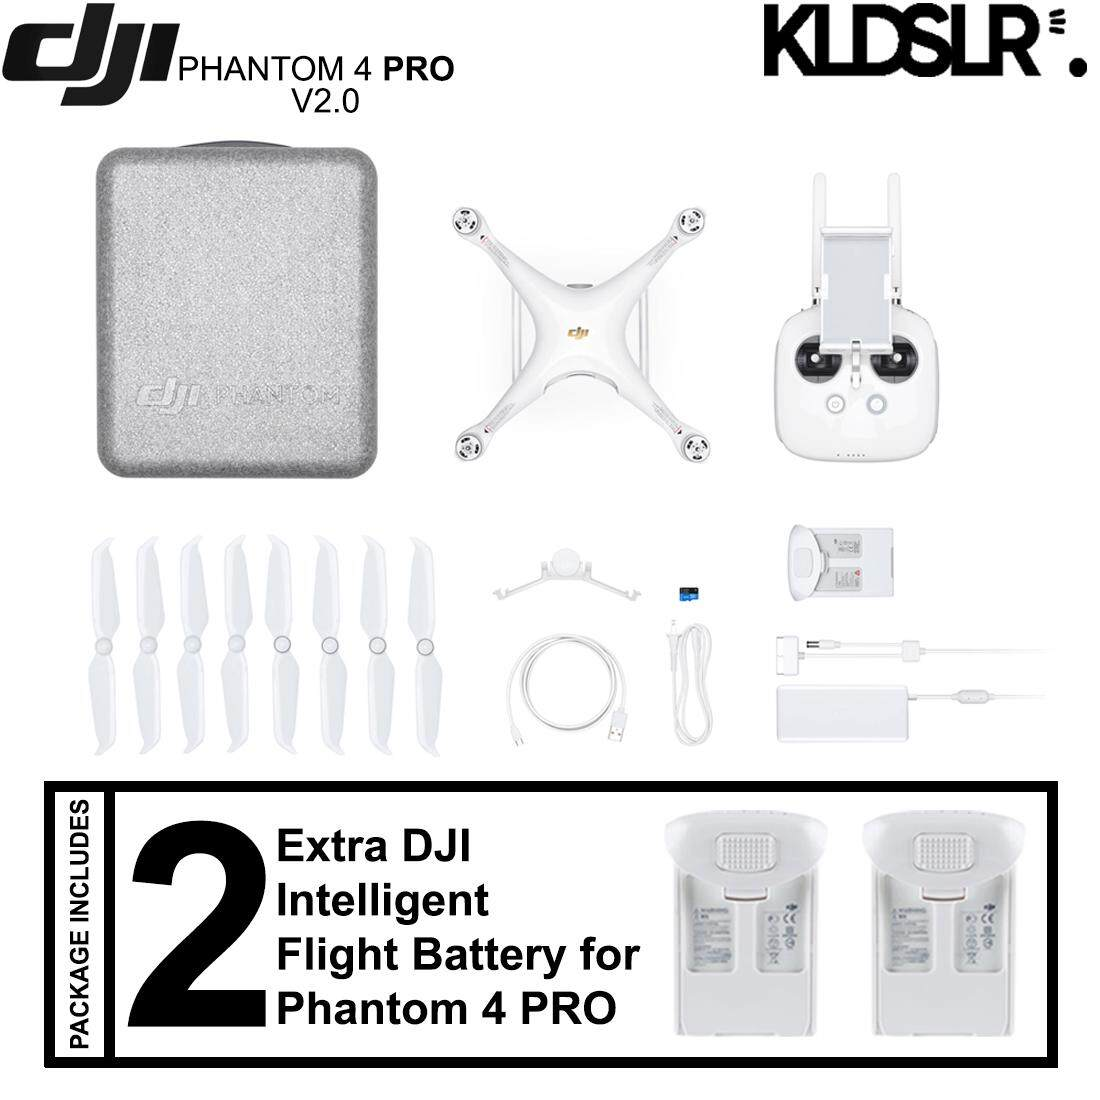 DJI Phantom 4 Pro Version 2.0 Quadcopter (FREE Extra 2 Original Batteries)